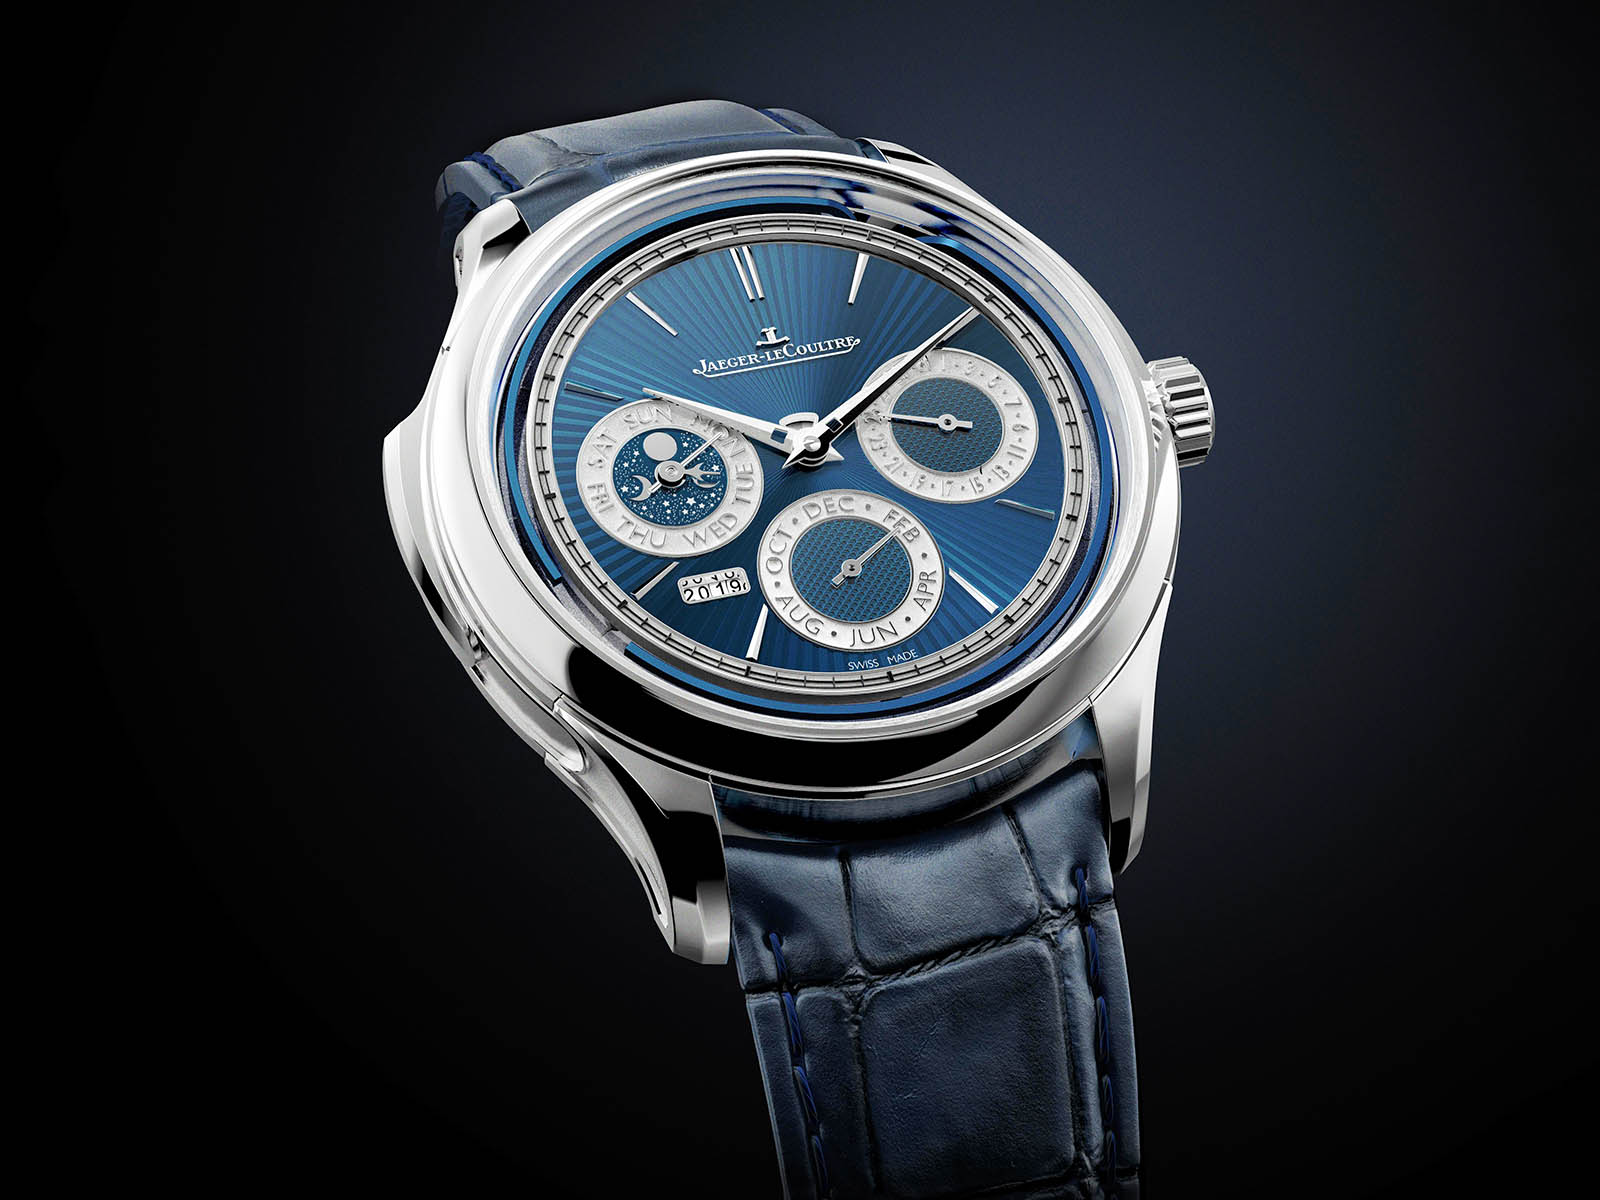 52334e1-jaeger-lecoultre-master-grande-tradition-repetition-minute-perpetuelle-2.jpg